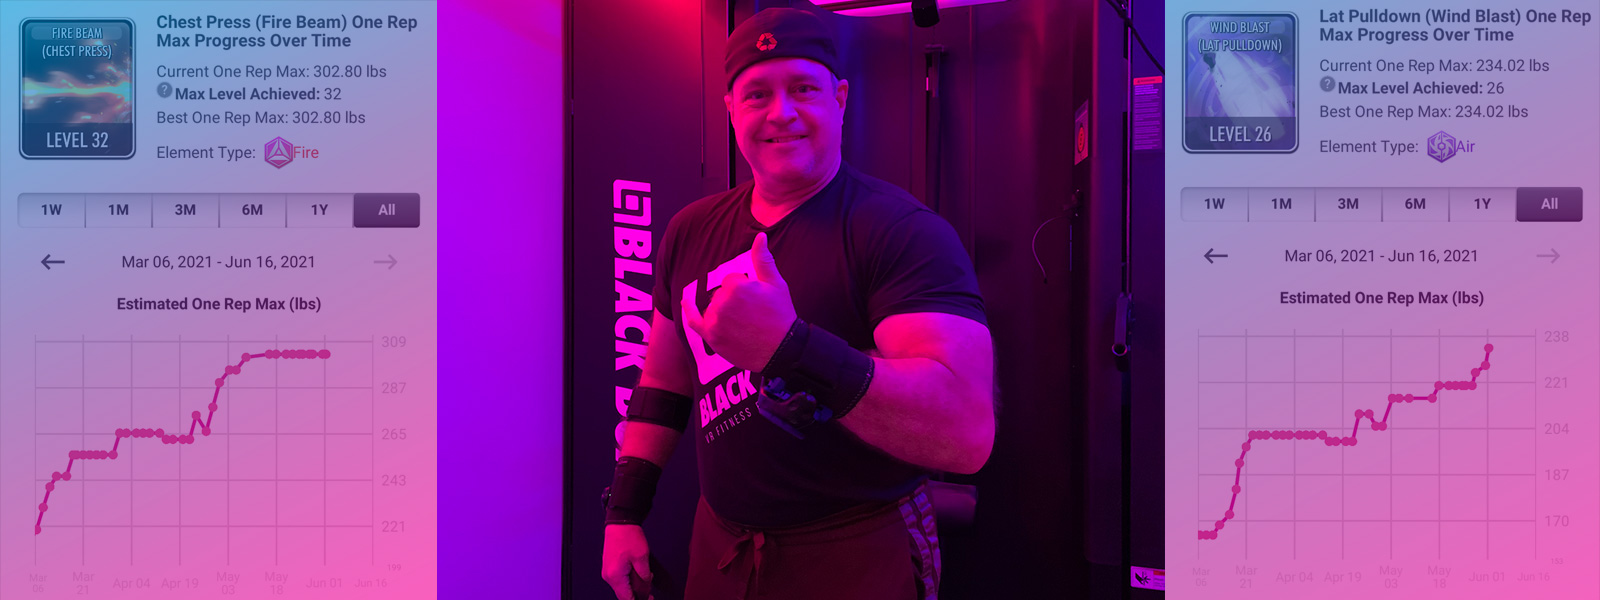 Ex Power Lifter Brings Stamina And Health Back To His Life With Black Box Fitness